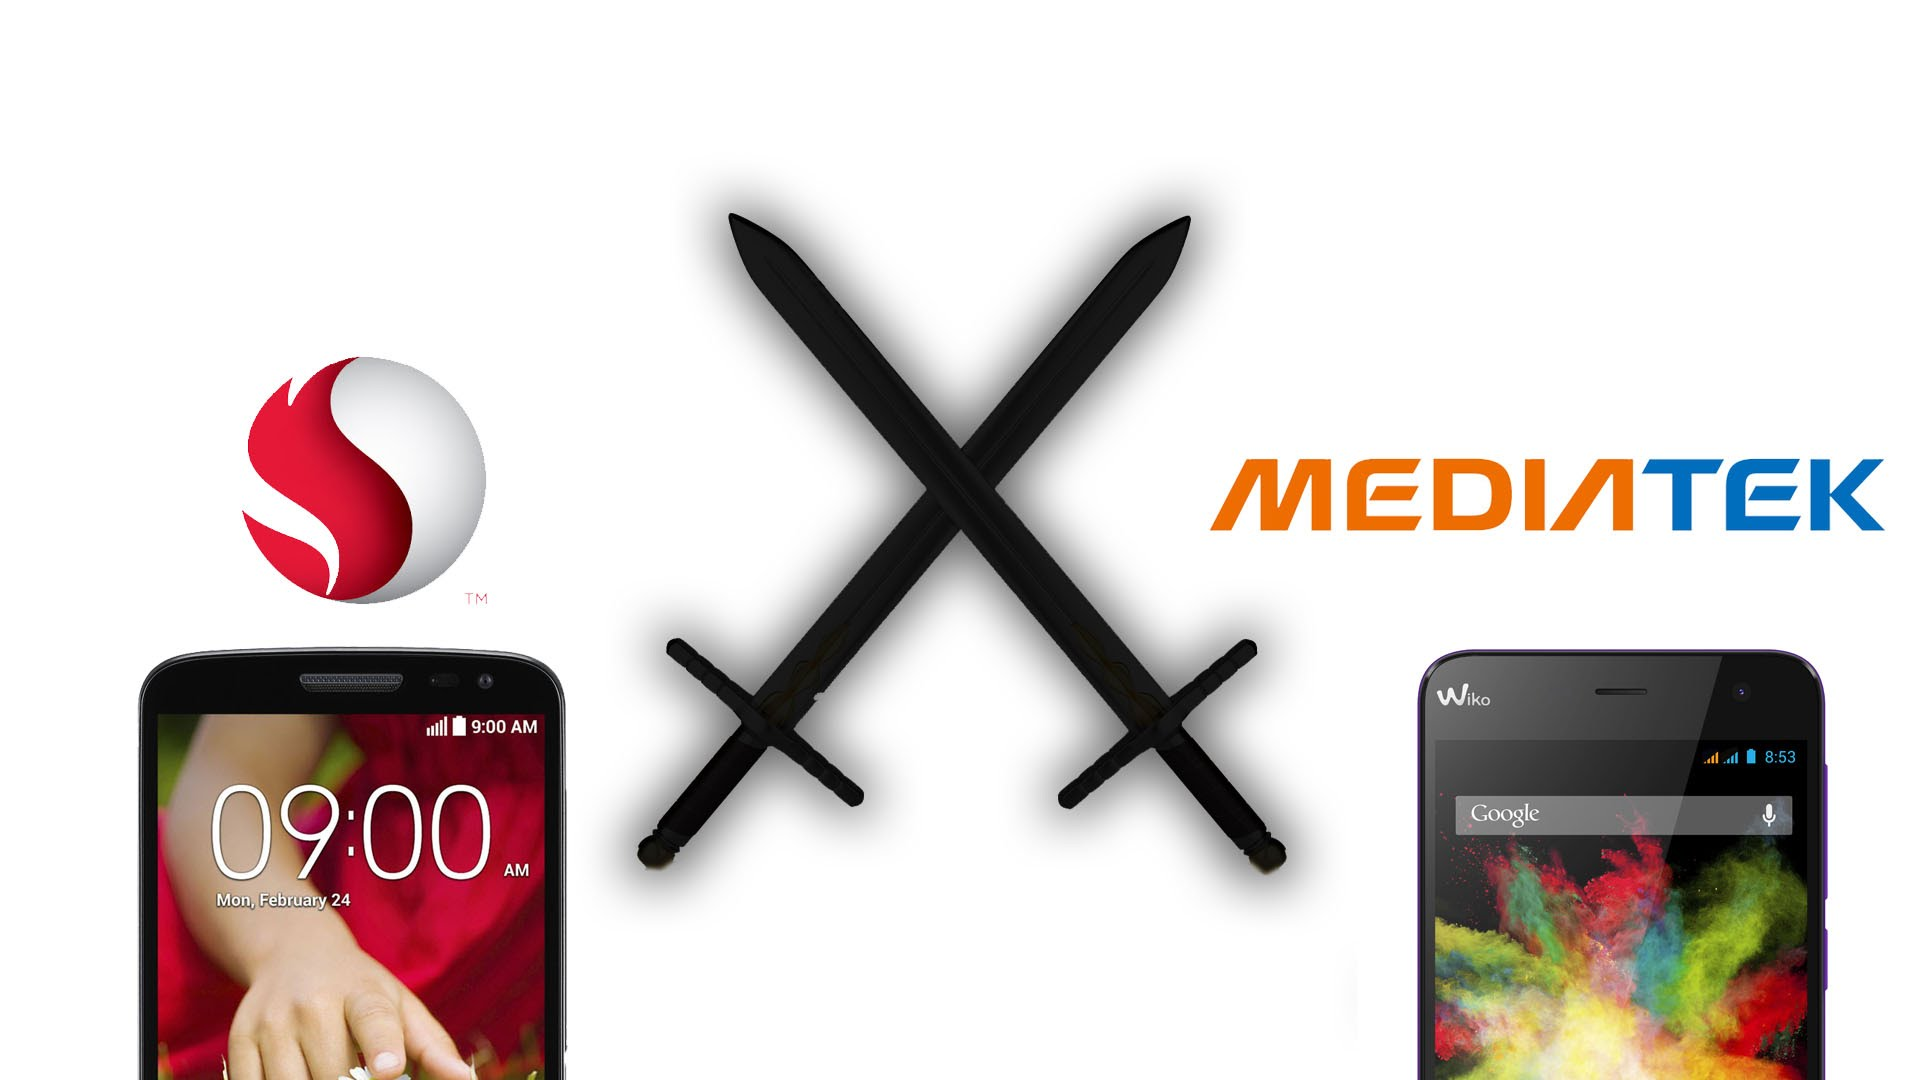 MediaTek vs Qualcomm (2)